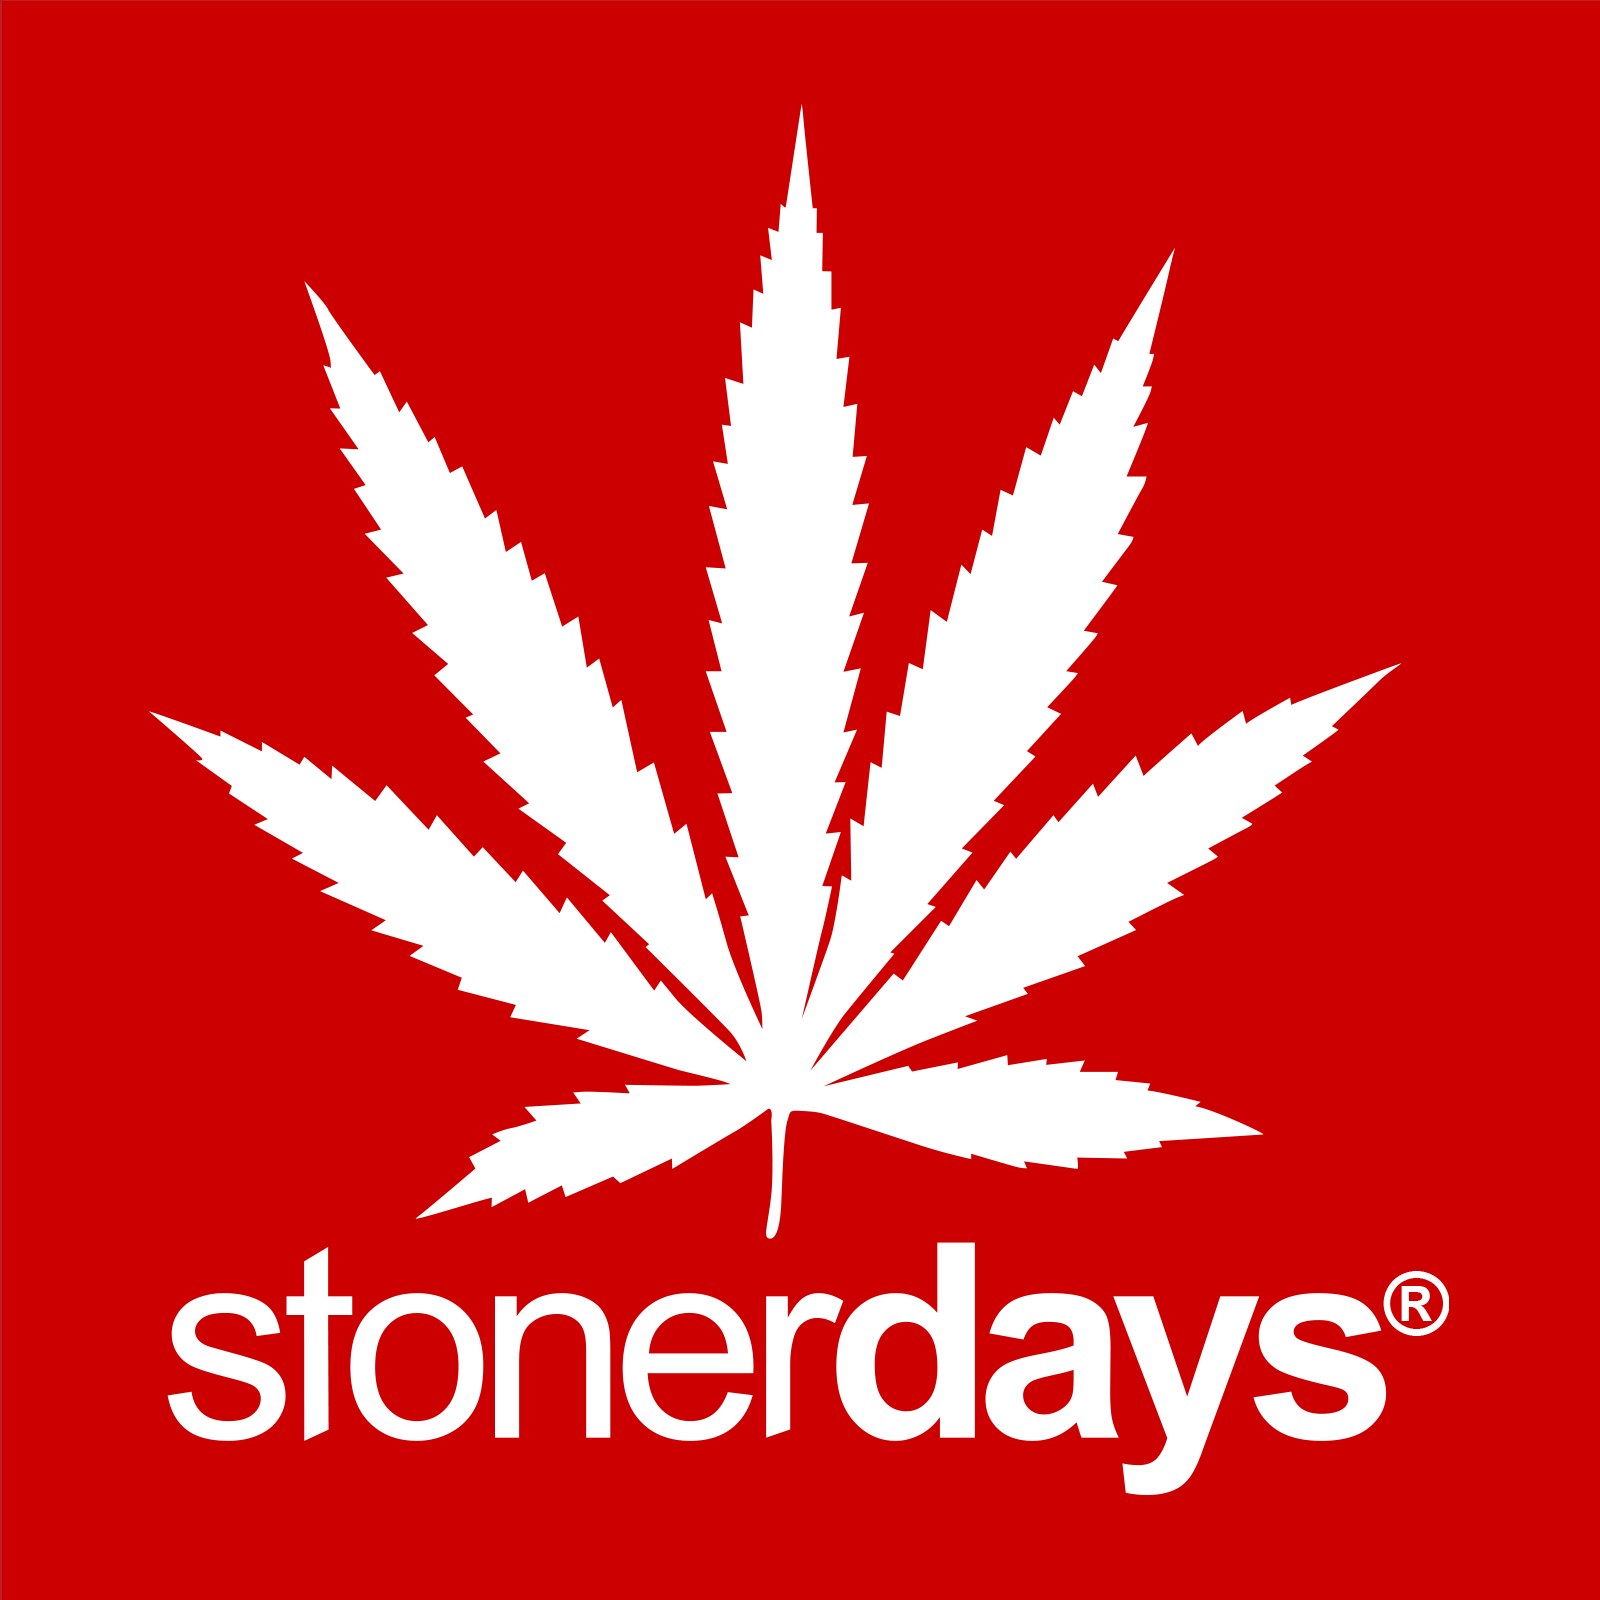 Stoner | Pictures | Stoners Clothing | Blog | StonerDays